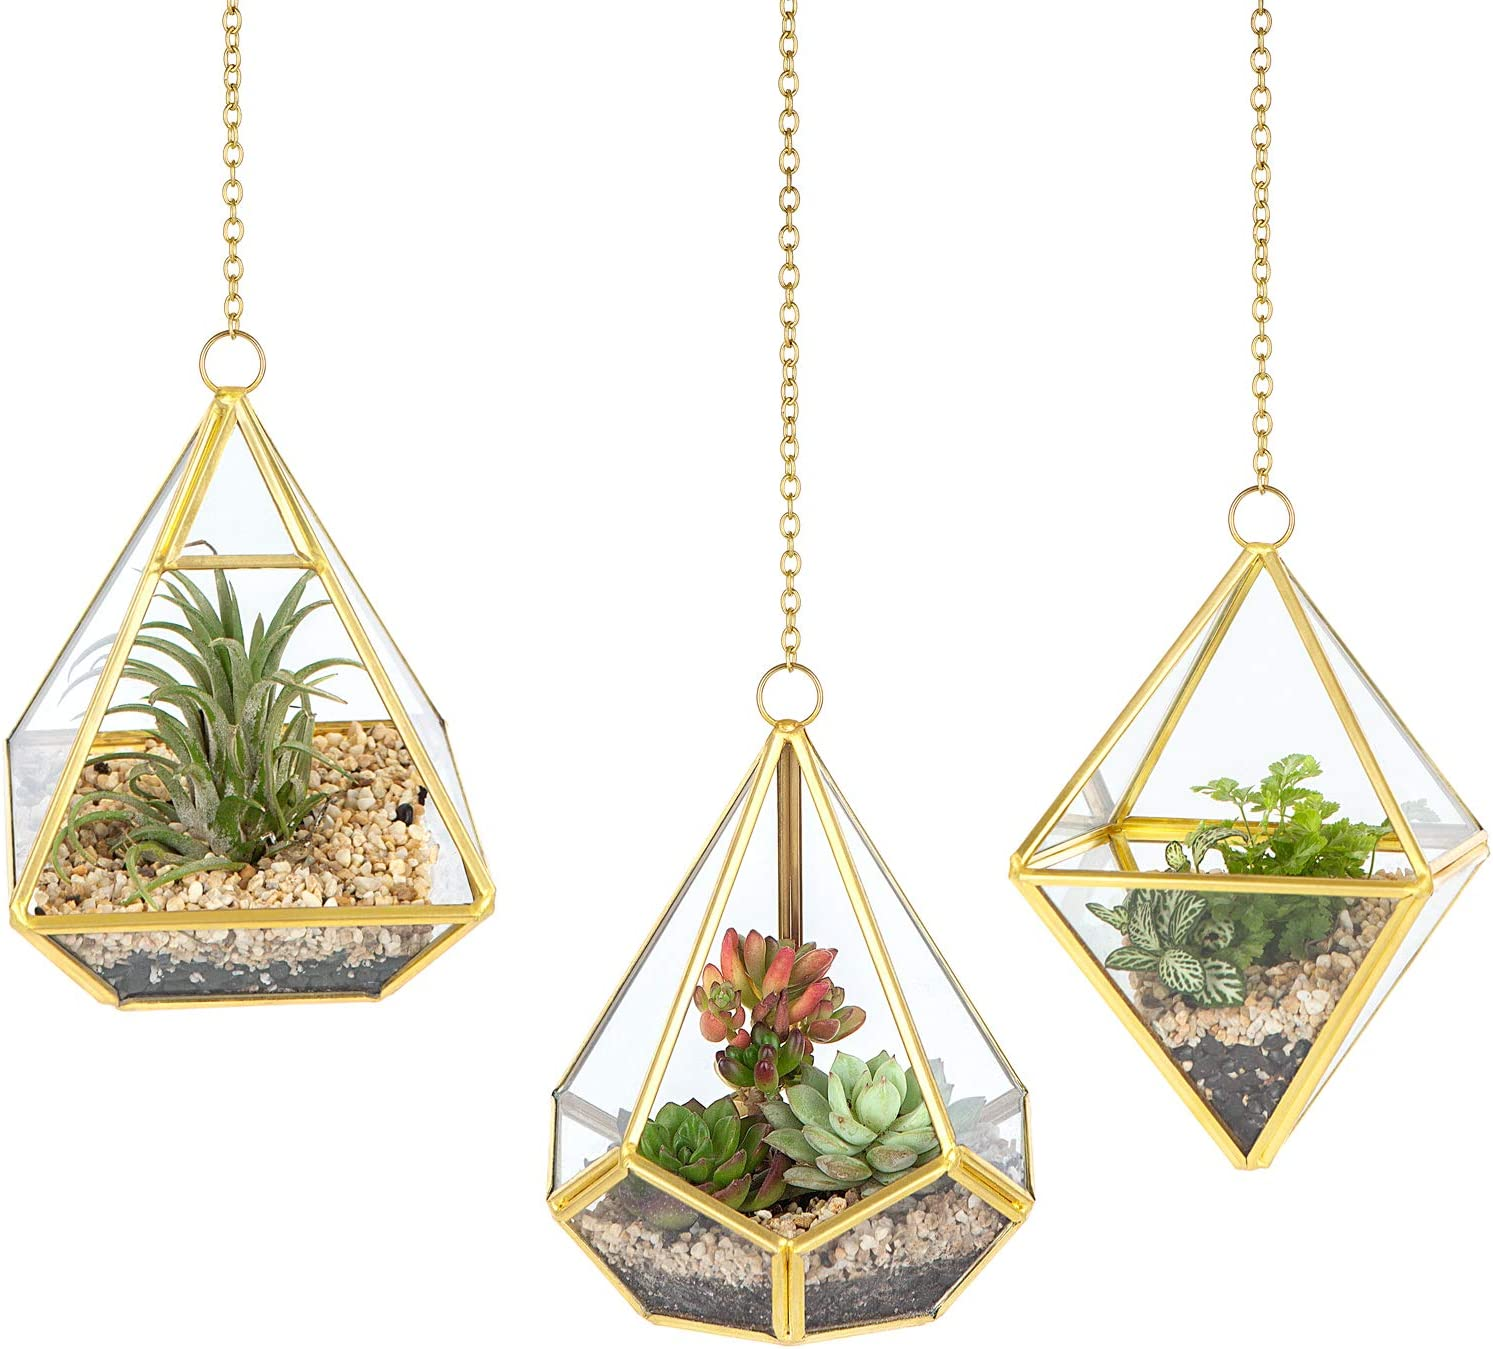 Mkono 3 Pcs Small Hanging Glass Terrarium Geometric Container Vertical Modern Planter Windowsill Decor DIY Display Box Centerpiece Gift for Succulent Fern Moss Air Plants Miniature Fairy Garden, Gold